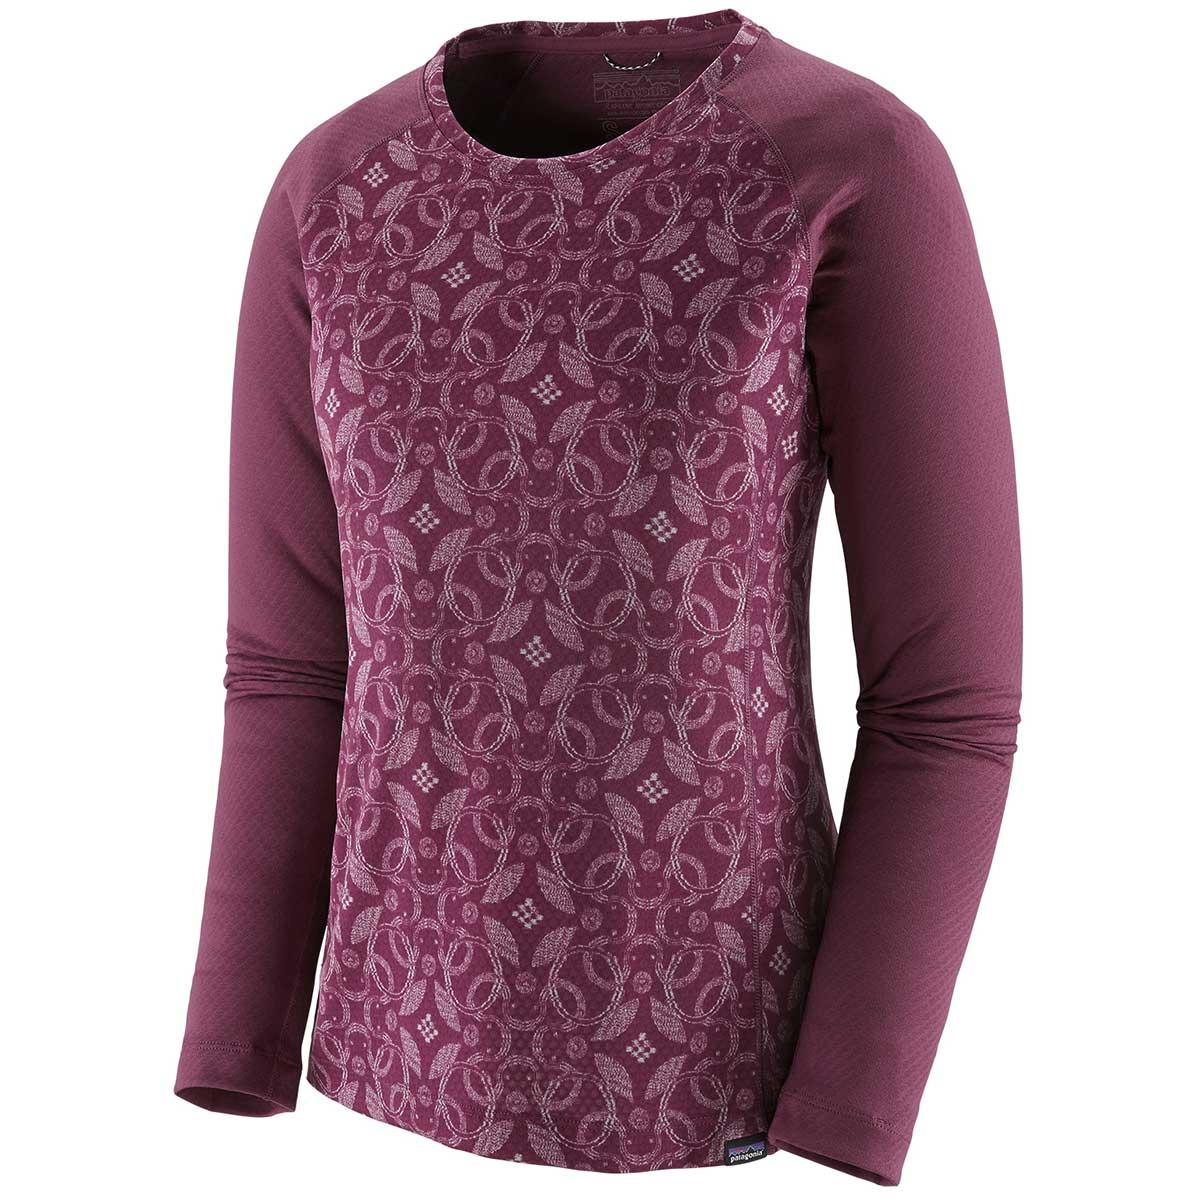 Patagonia women's Capilene Midweight Crew in Arctic Ox Geo and Light Balsamic front view